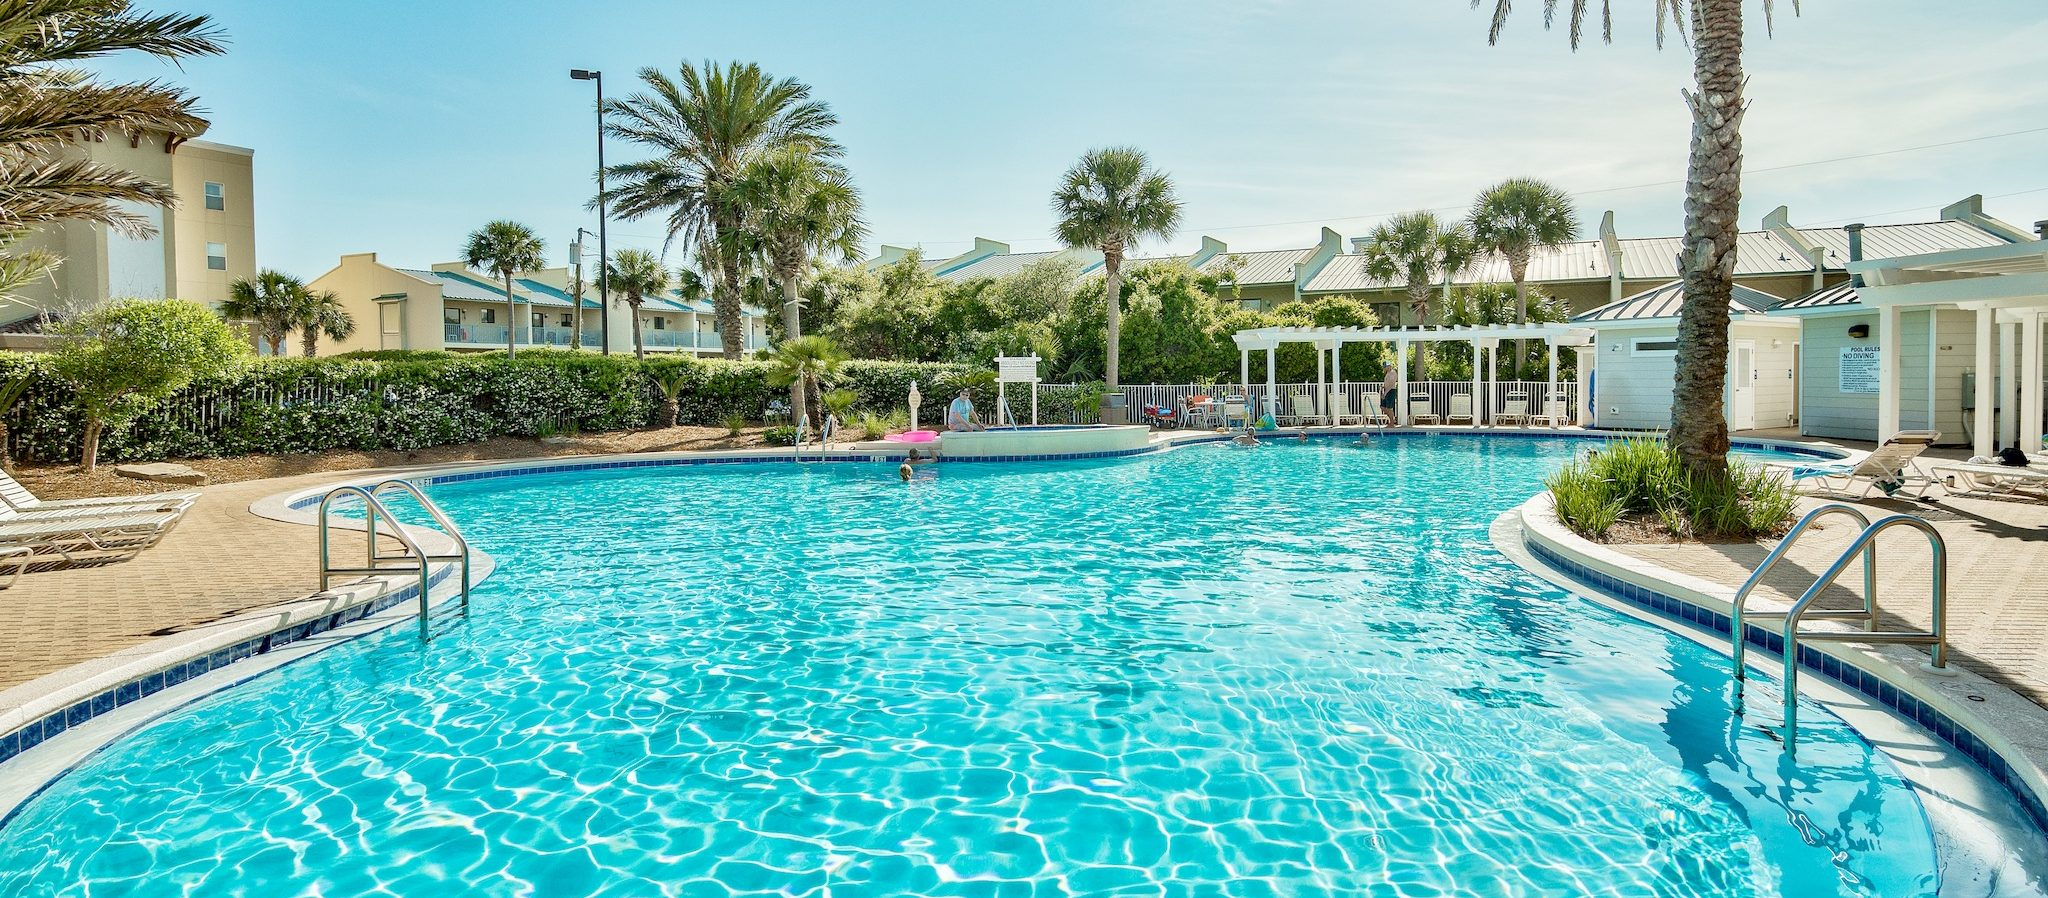 The outdoor pool has a fountain, hot tub, and tropical landscaping.